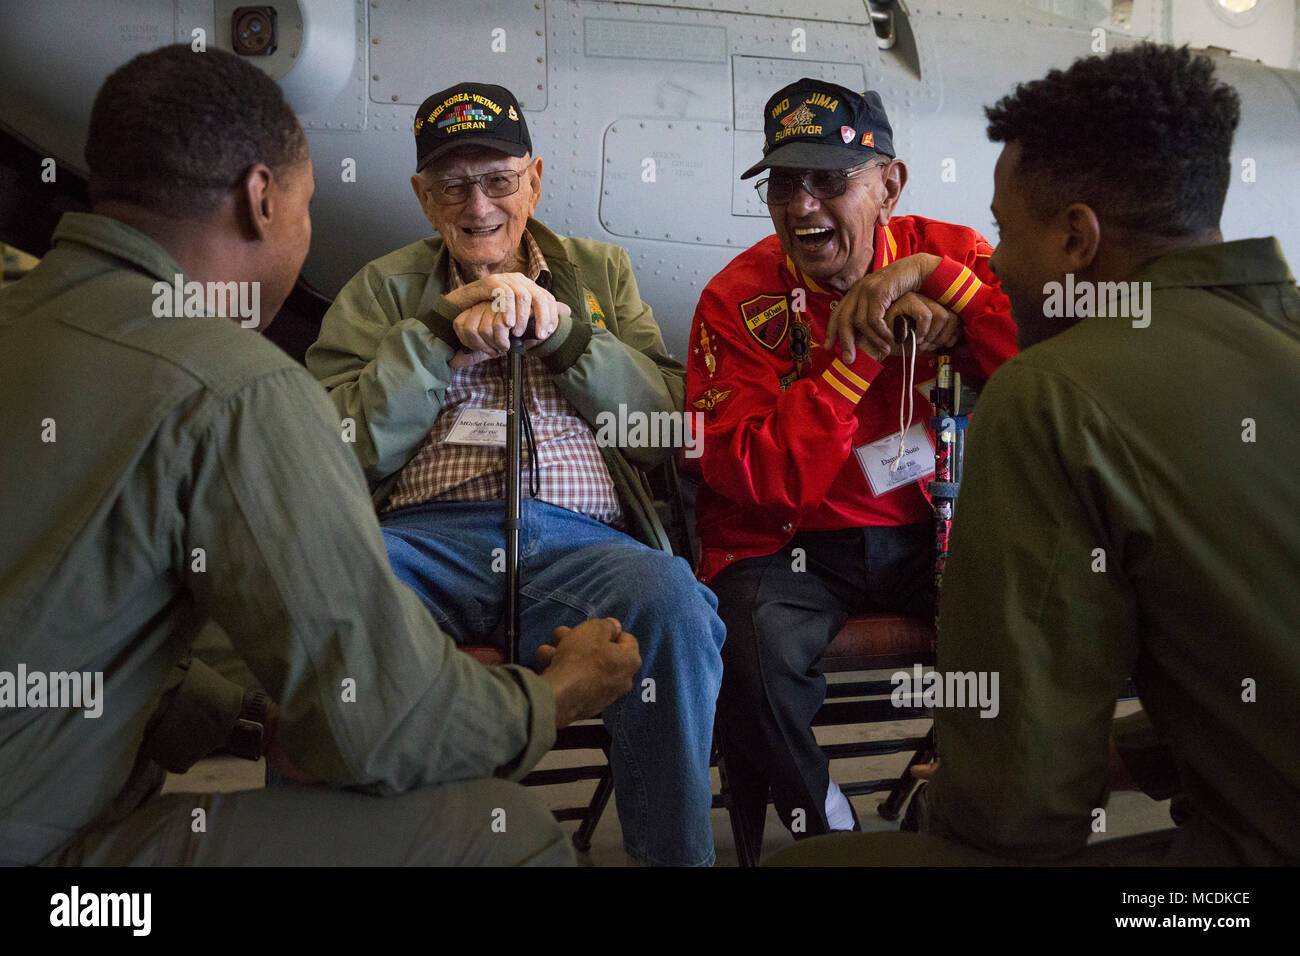 Len Maffioli and Damaso Sutis, two retired Marines and Iwo Jima veterans, share stories and laughs with active-duty Marines with Marine Medium Tiltrotor Squadron (VMM) 363 at Marine Corps Air Station Miramar, Calif., Feb. 16. This year marks the 73rd anniversary of the Battle of Iwo Jima, which began Feb. 19, 1945 and ended March 26, 1945. (U.S. Marine Corps photo by Lance Cpl. Mark Lowe II/Released) Stock Photo